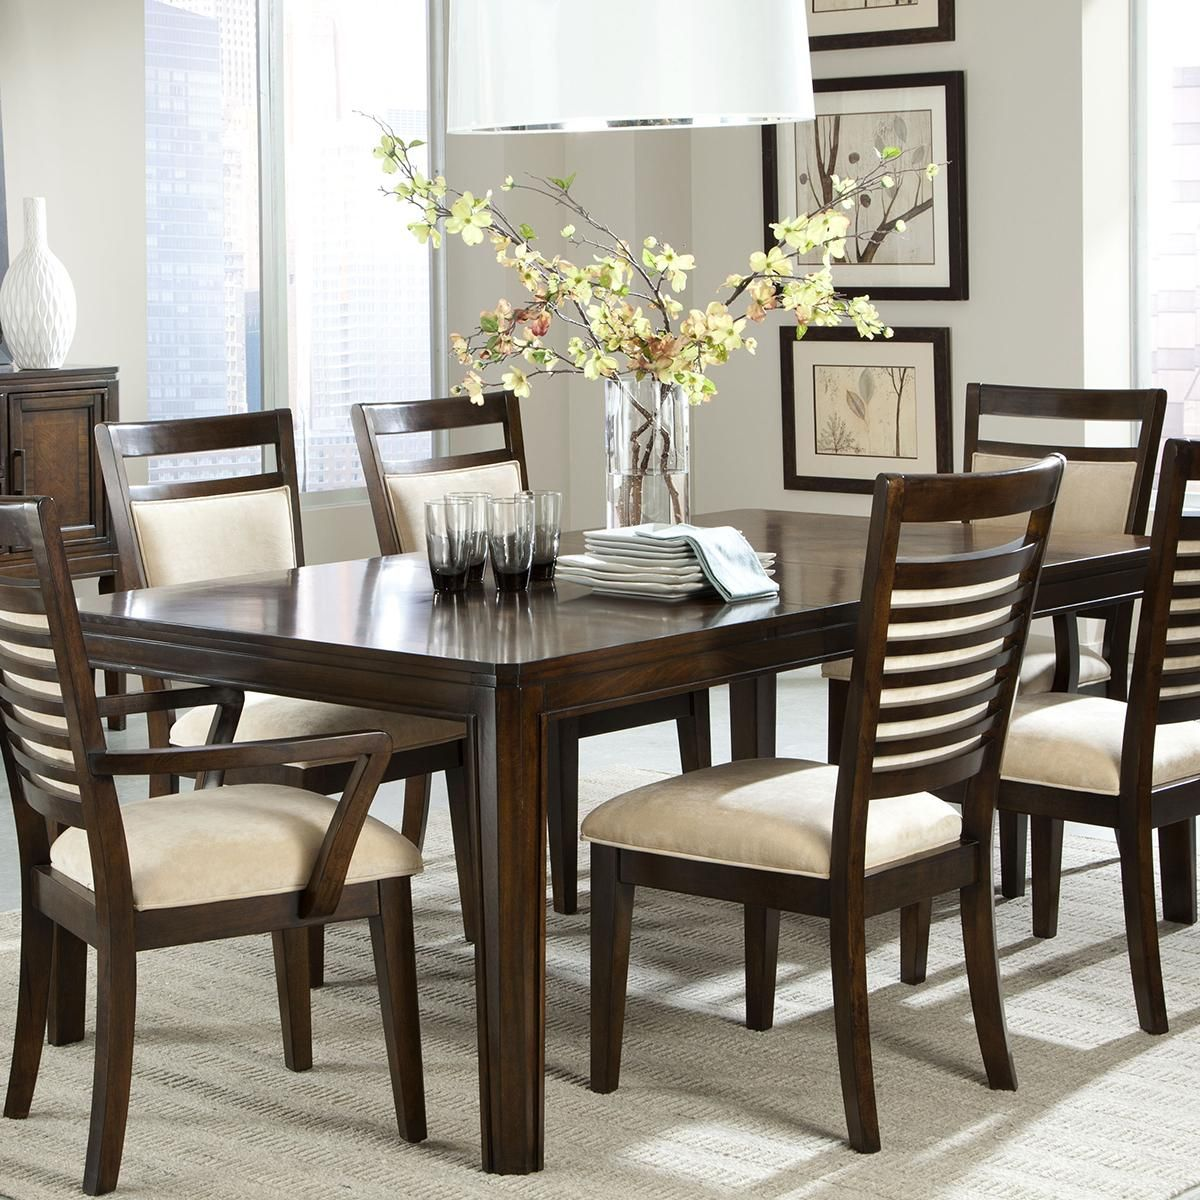 Product Main Image 0 With Images Dining Room Sets Unique Dining Room Dining Table